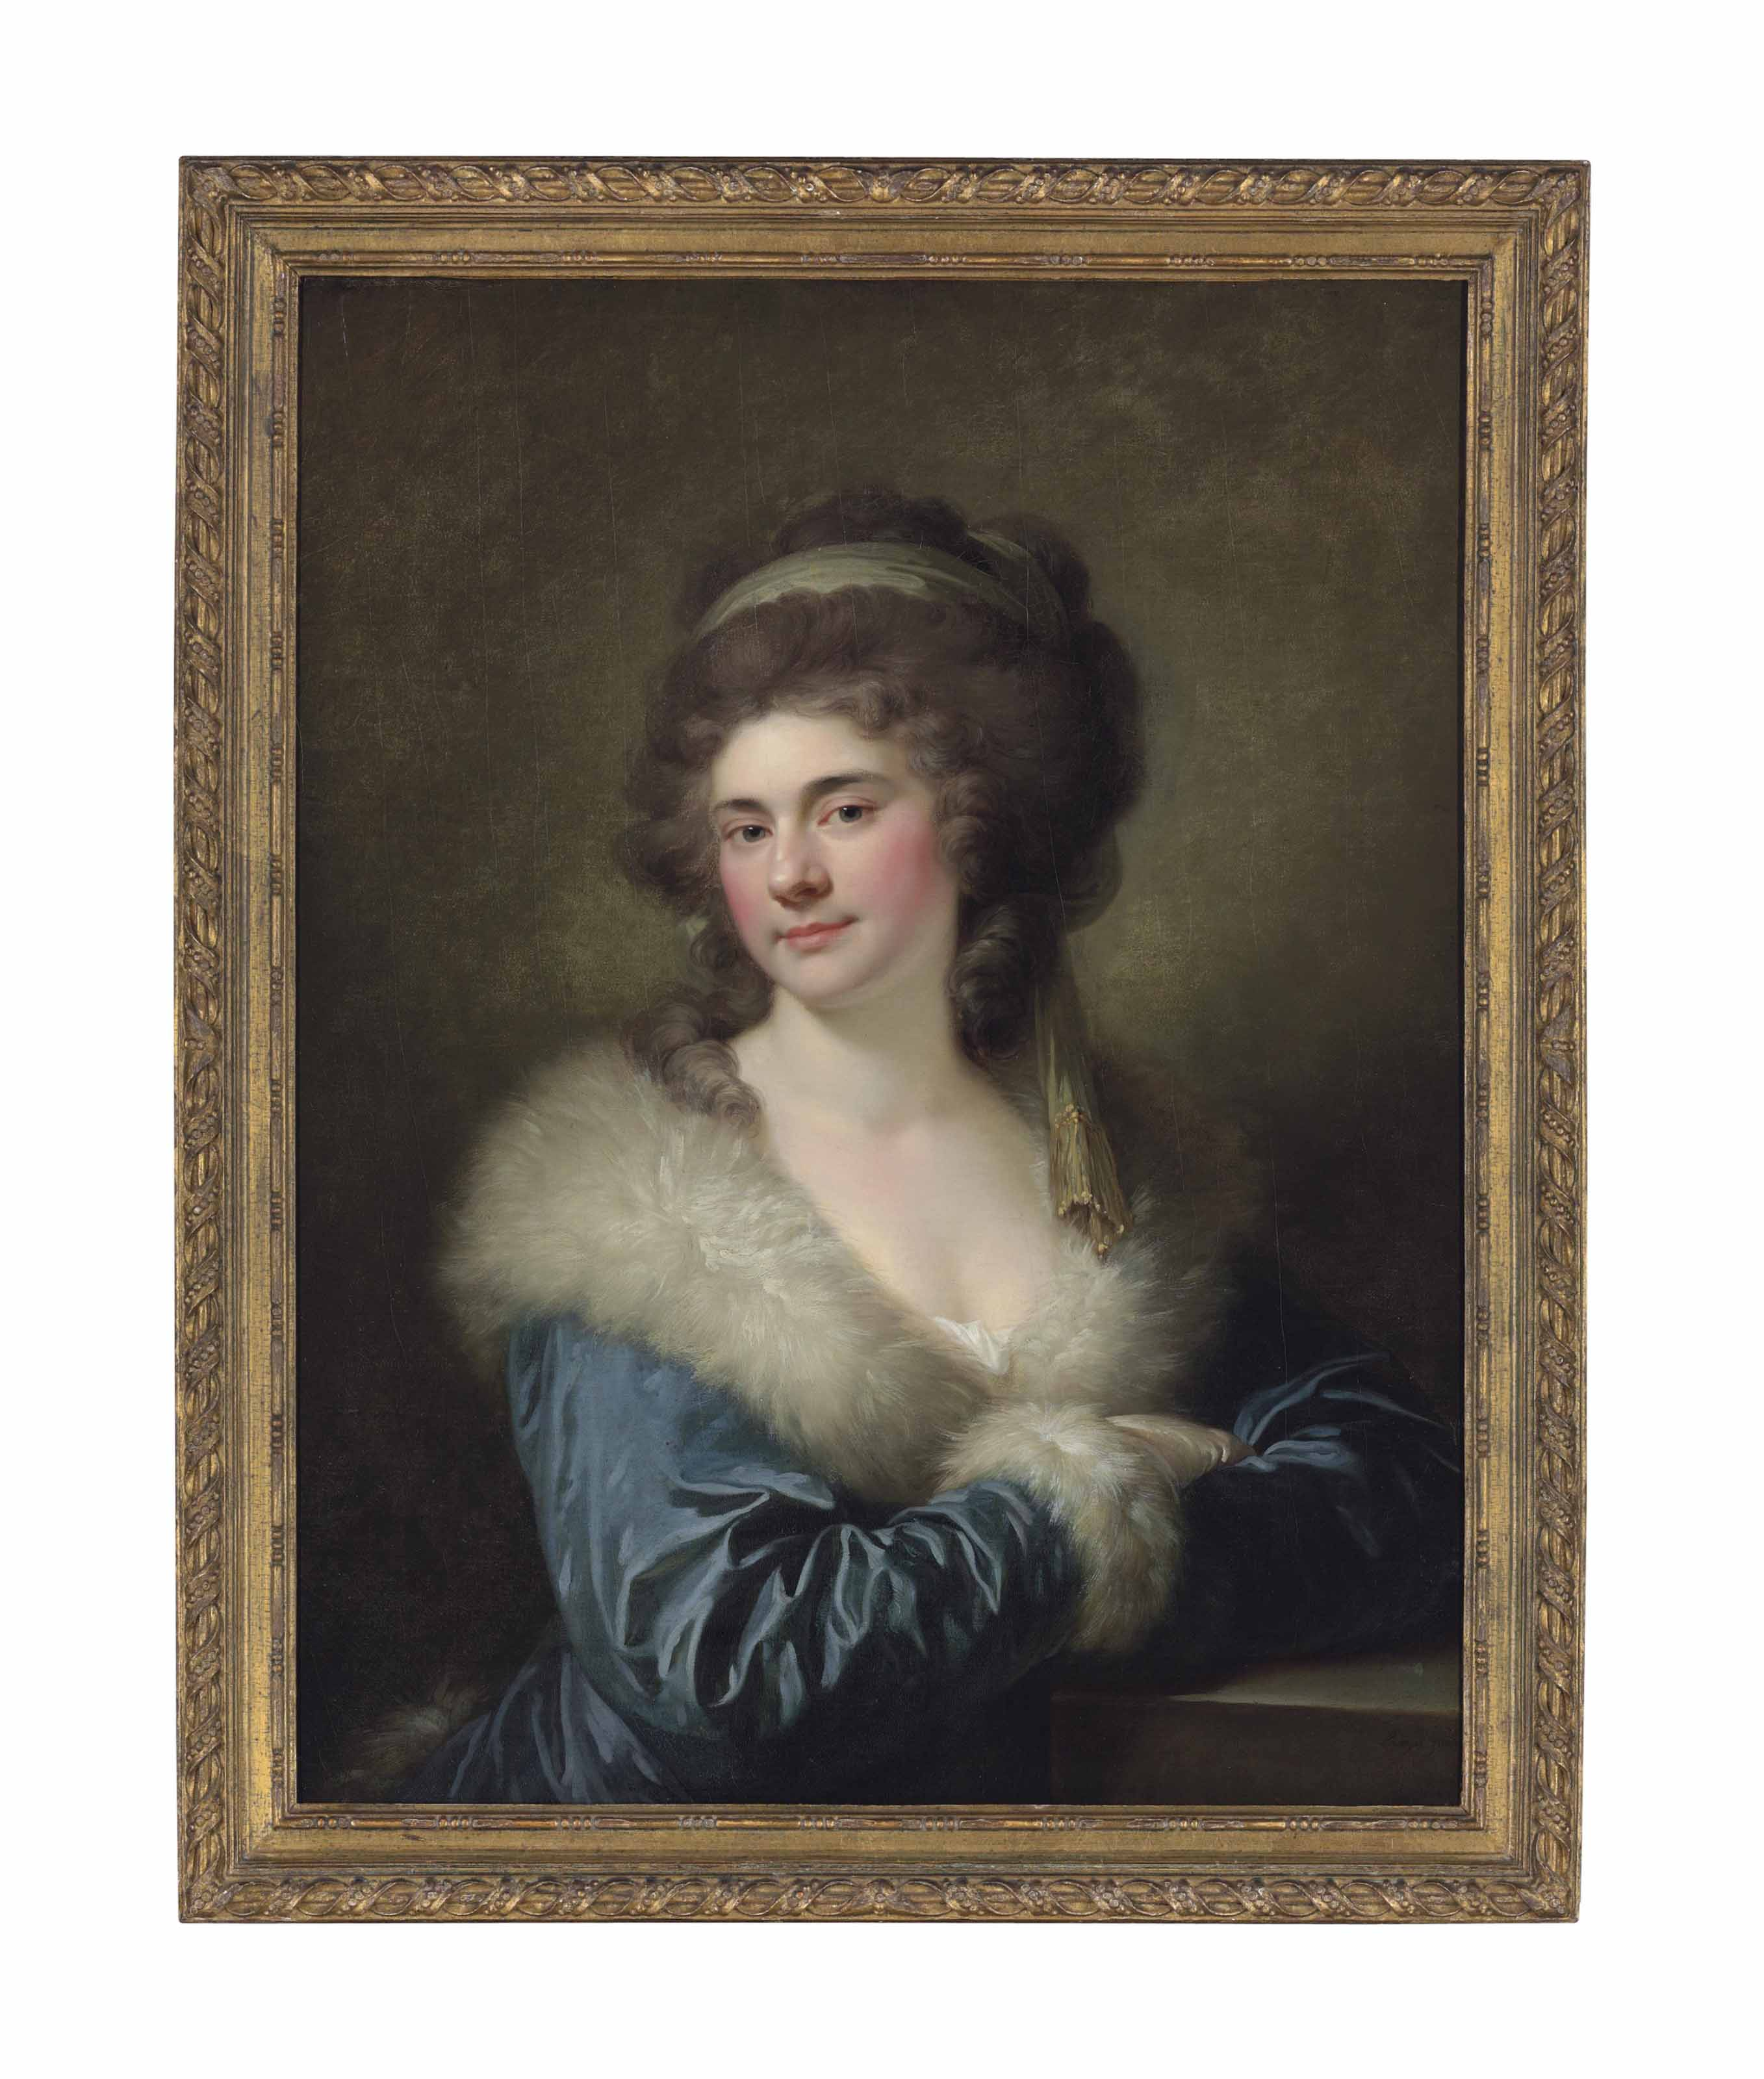 Portrait of Countess Julia Potocka, née Lubomirska (1764-1794), half-length, in a blue cloak with a white fur collar, leaning on a pedestal